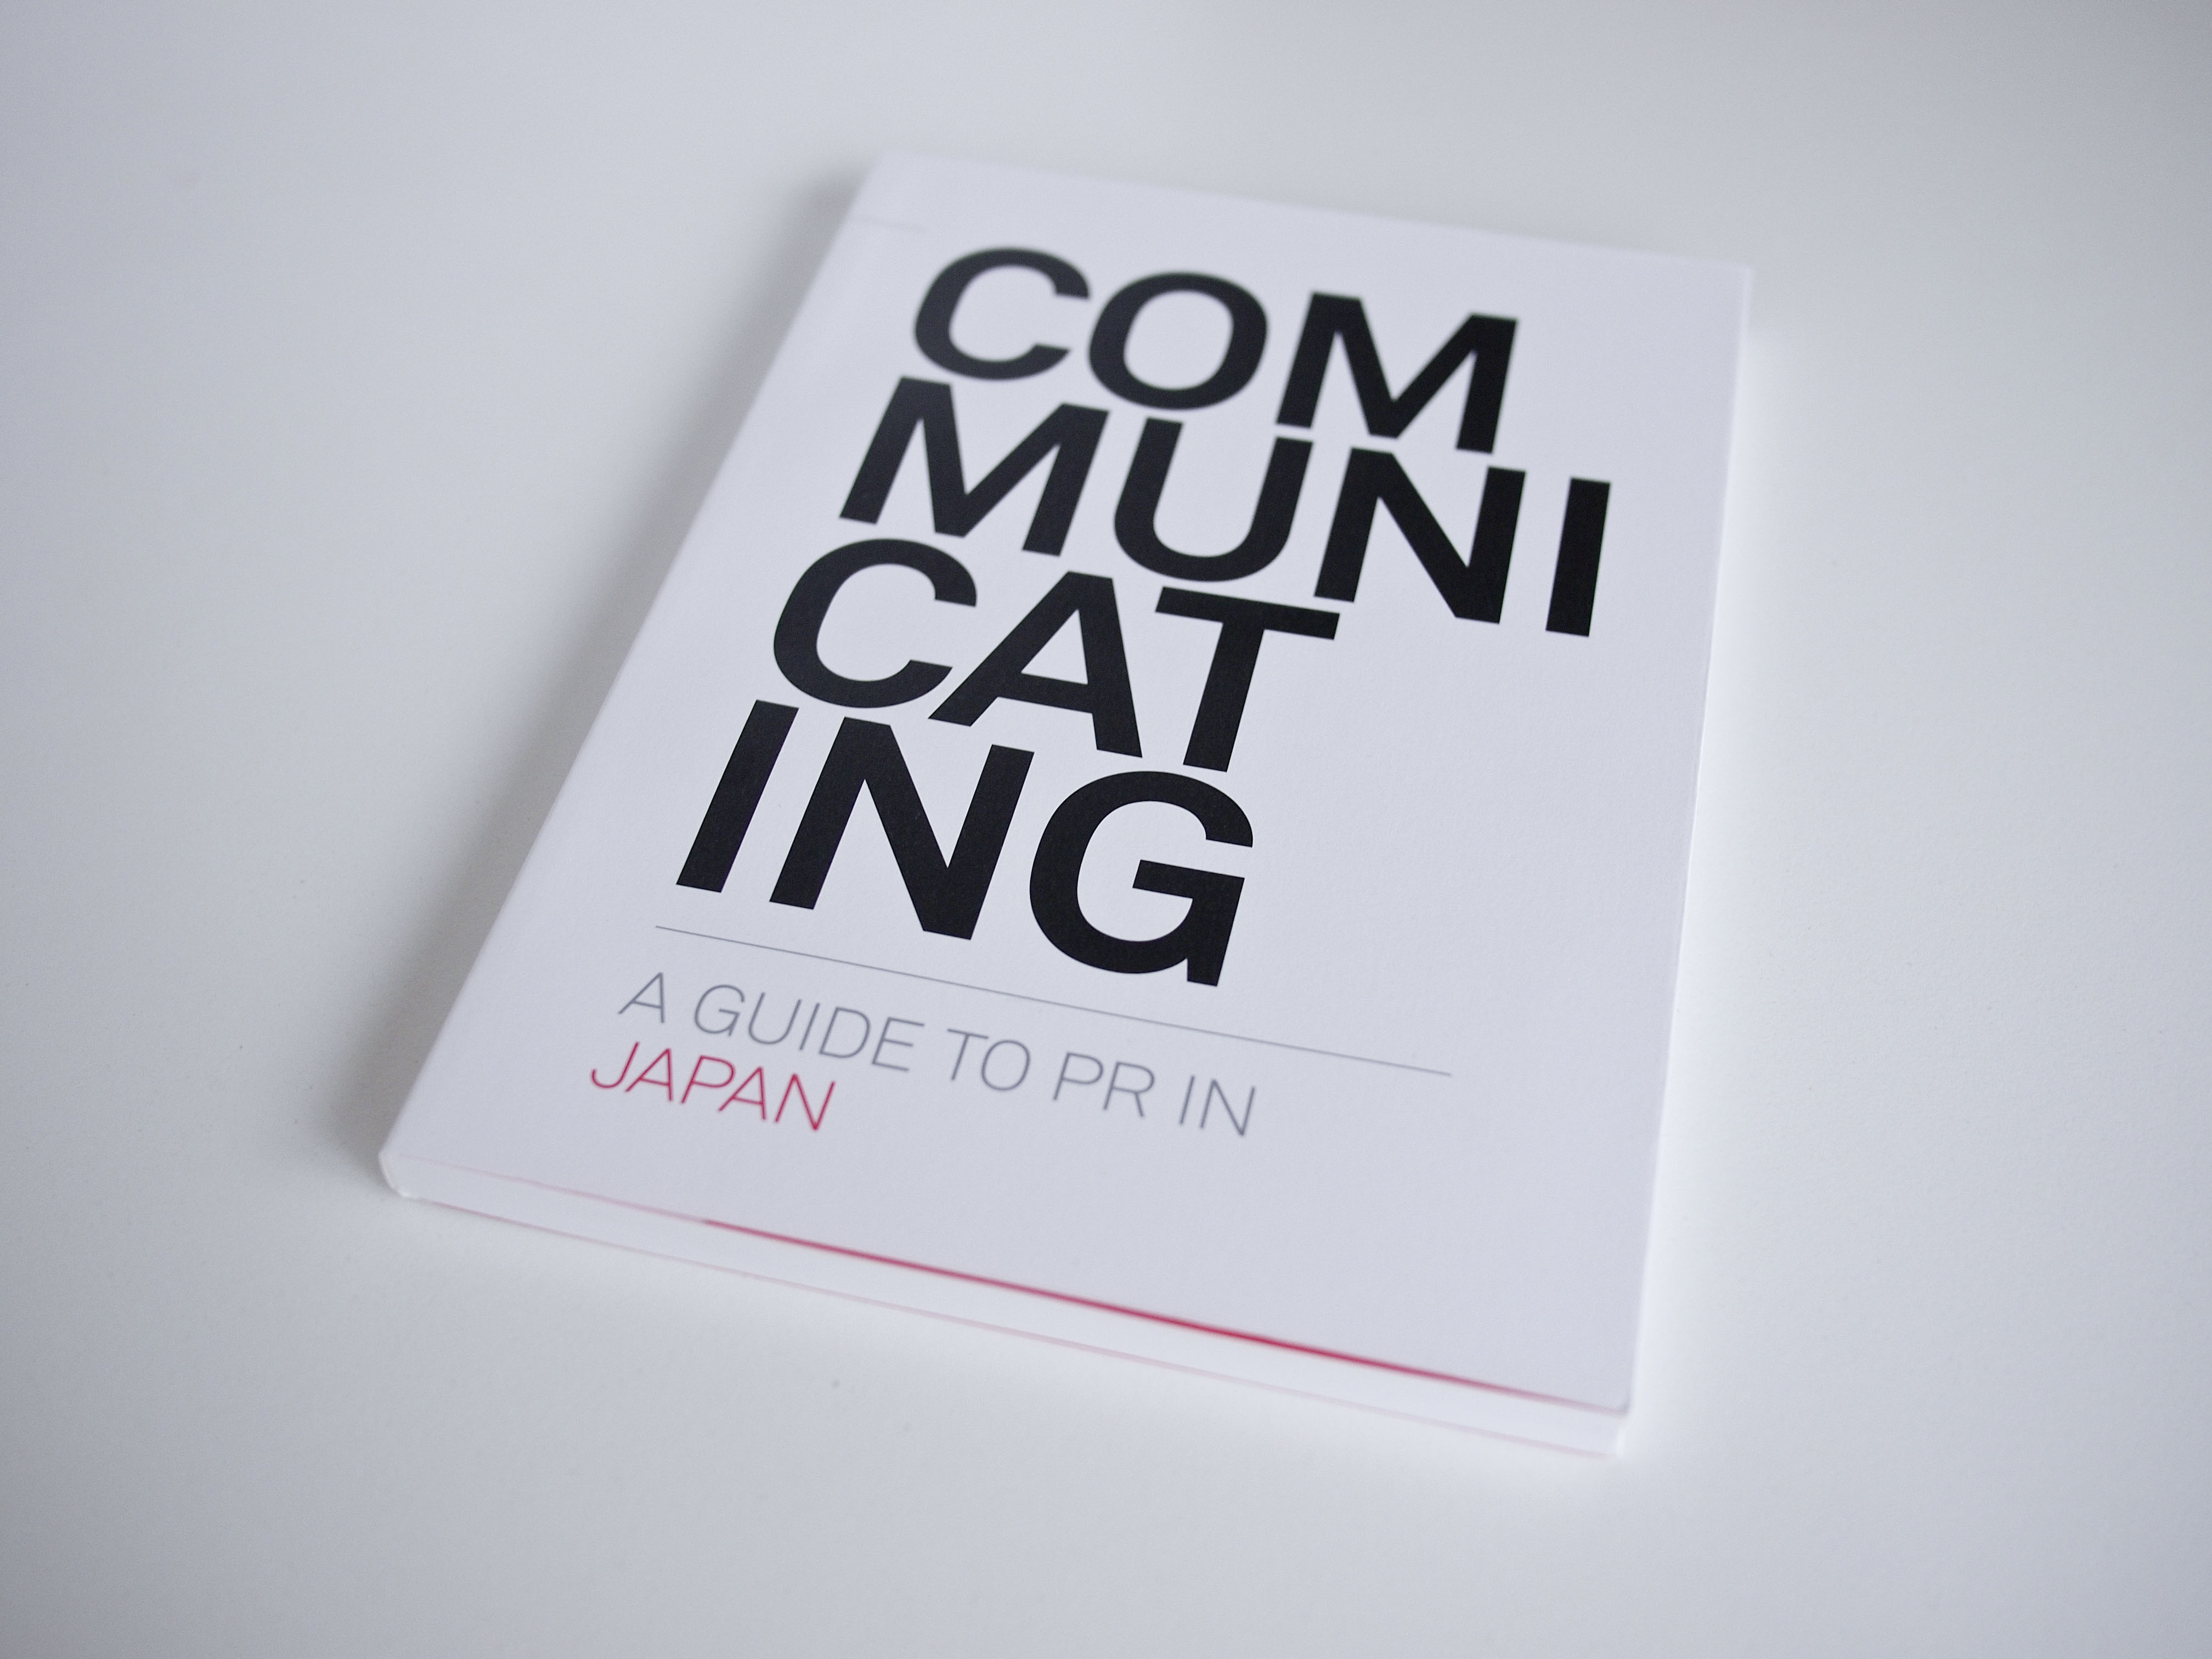 COM-MUNI-CAT-ING Communicating: A Guide to PR in Japanの制作_サムネイル